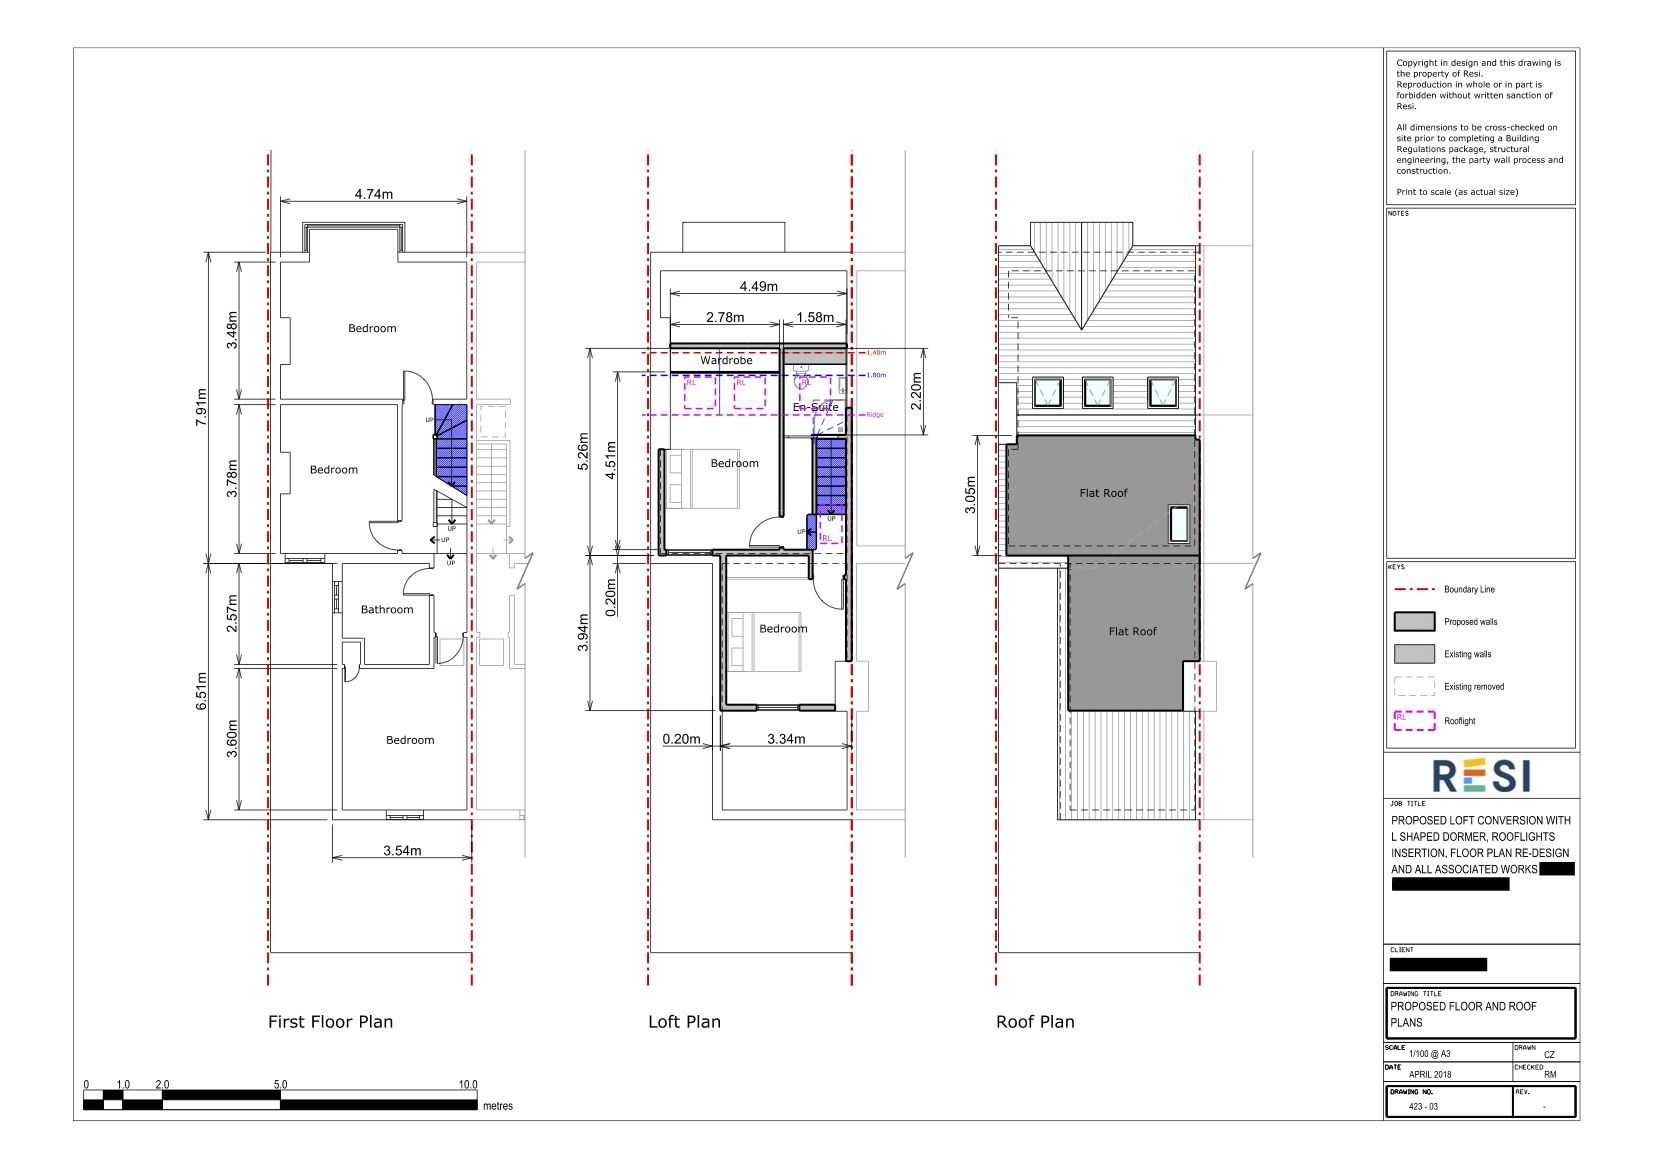 Architectural Drawings-34 - First Floor and Loft Plans